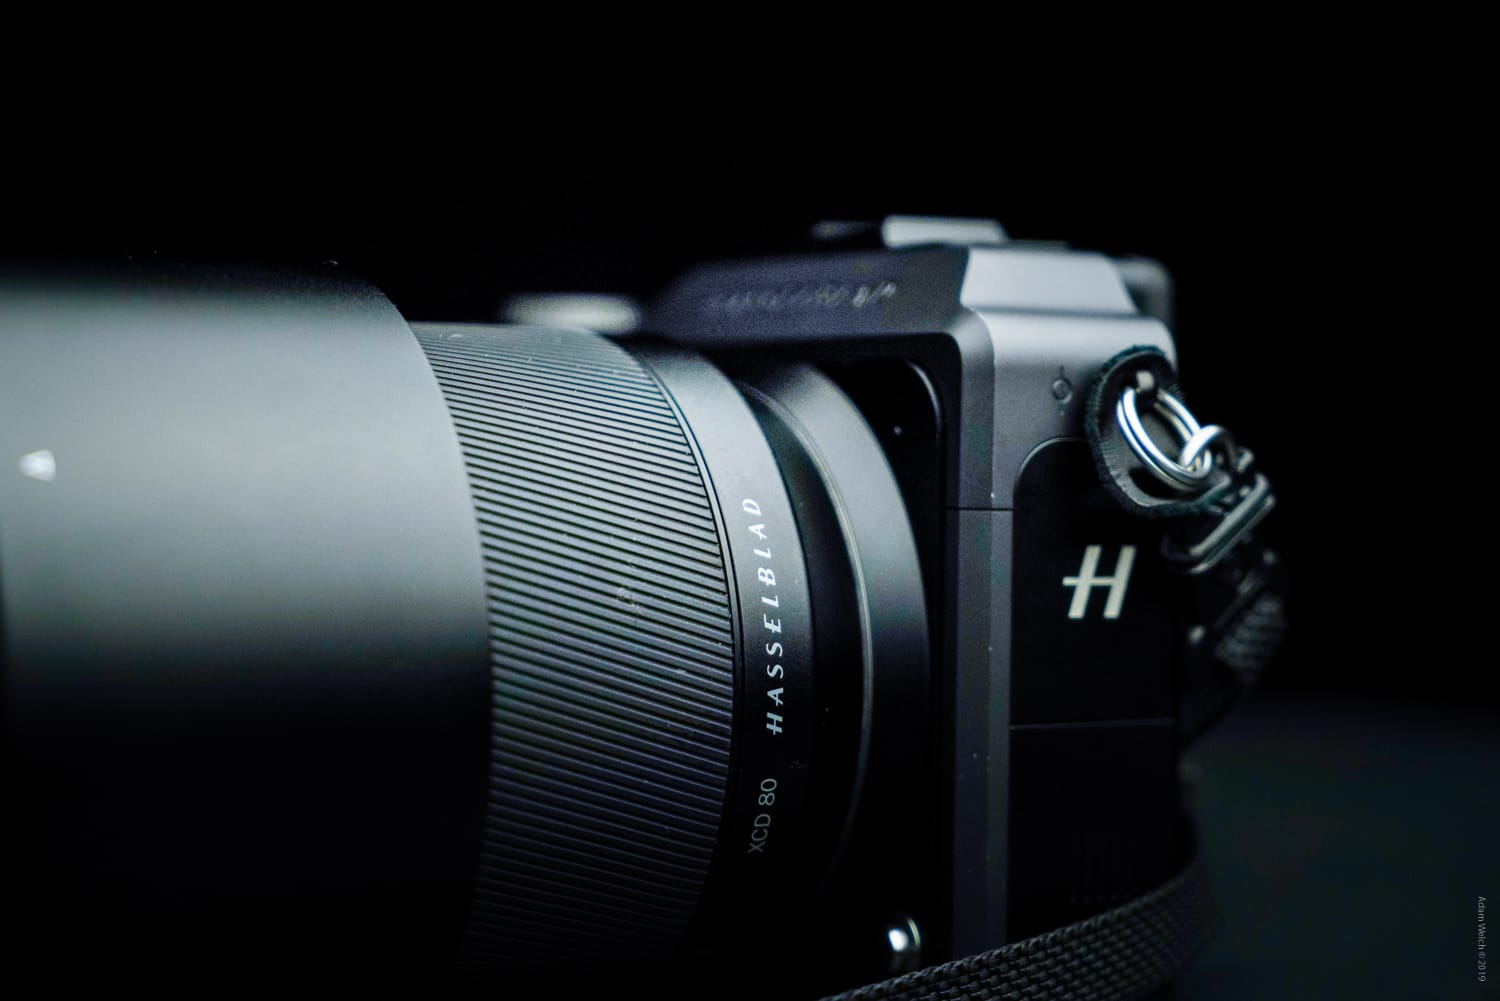 Review of the Hasselblad X1D II 50C Medium Format Mirrorless Camera